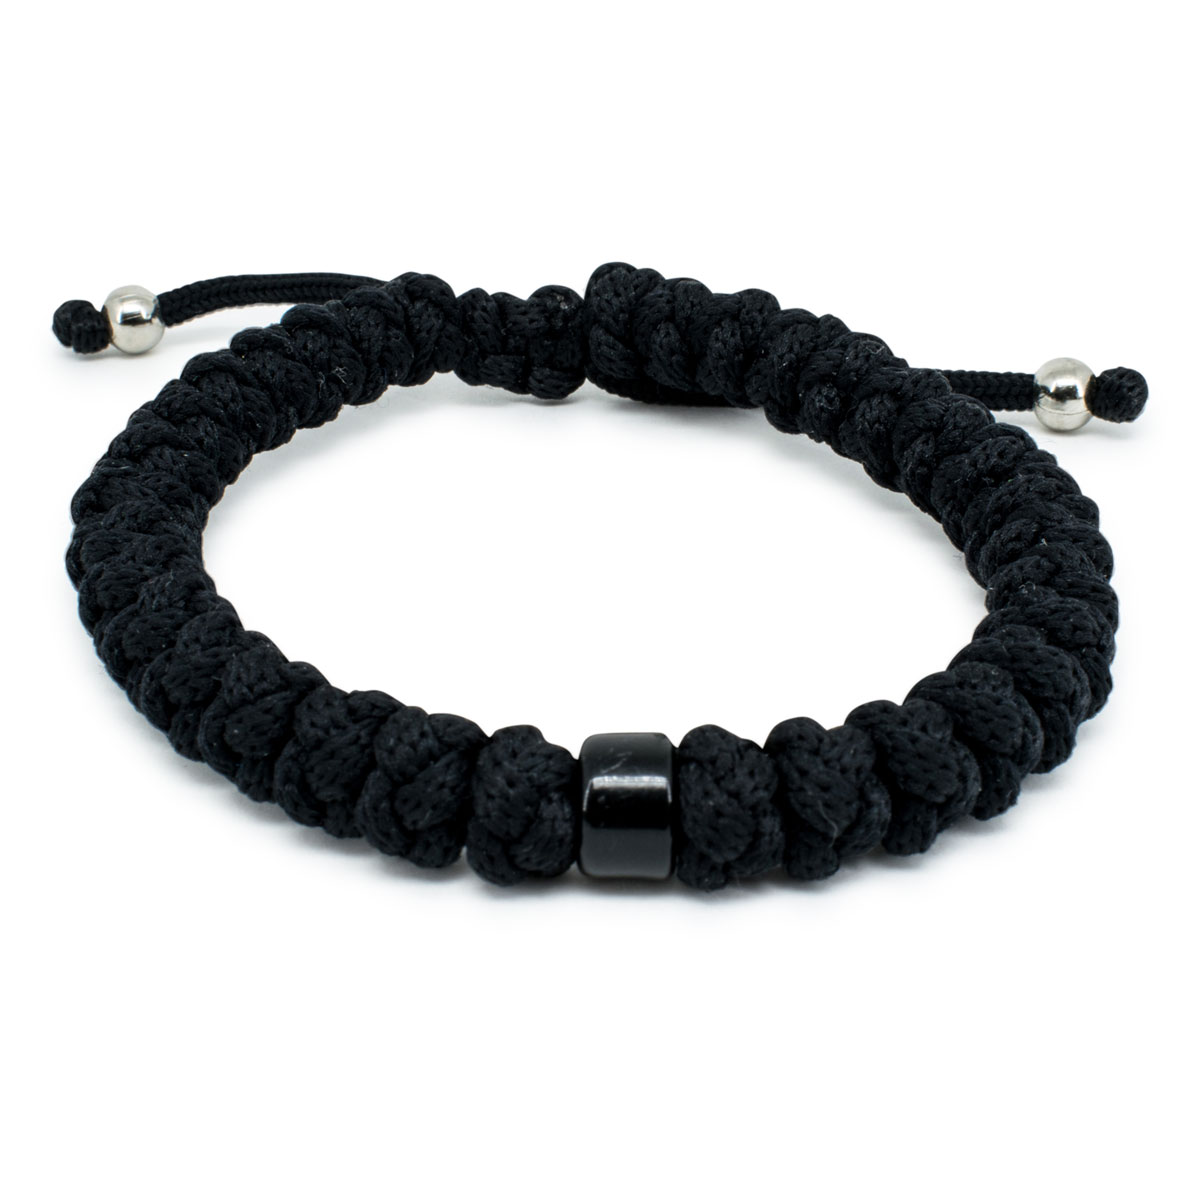 Adjule Black Prayer Bracelet With Bead 0